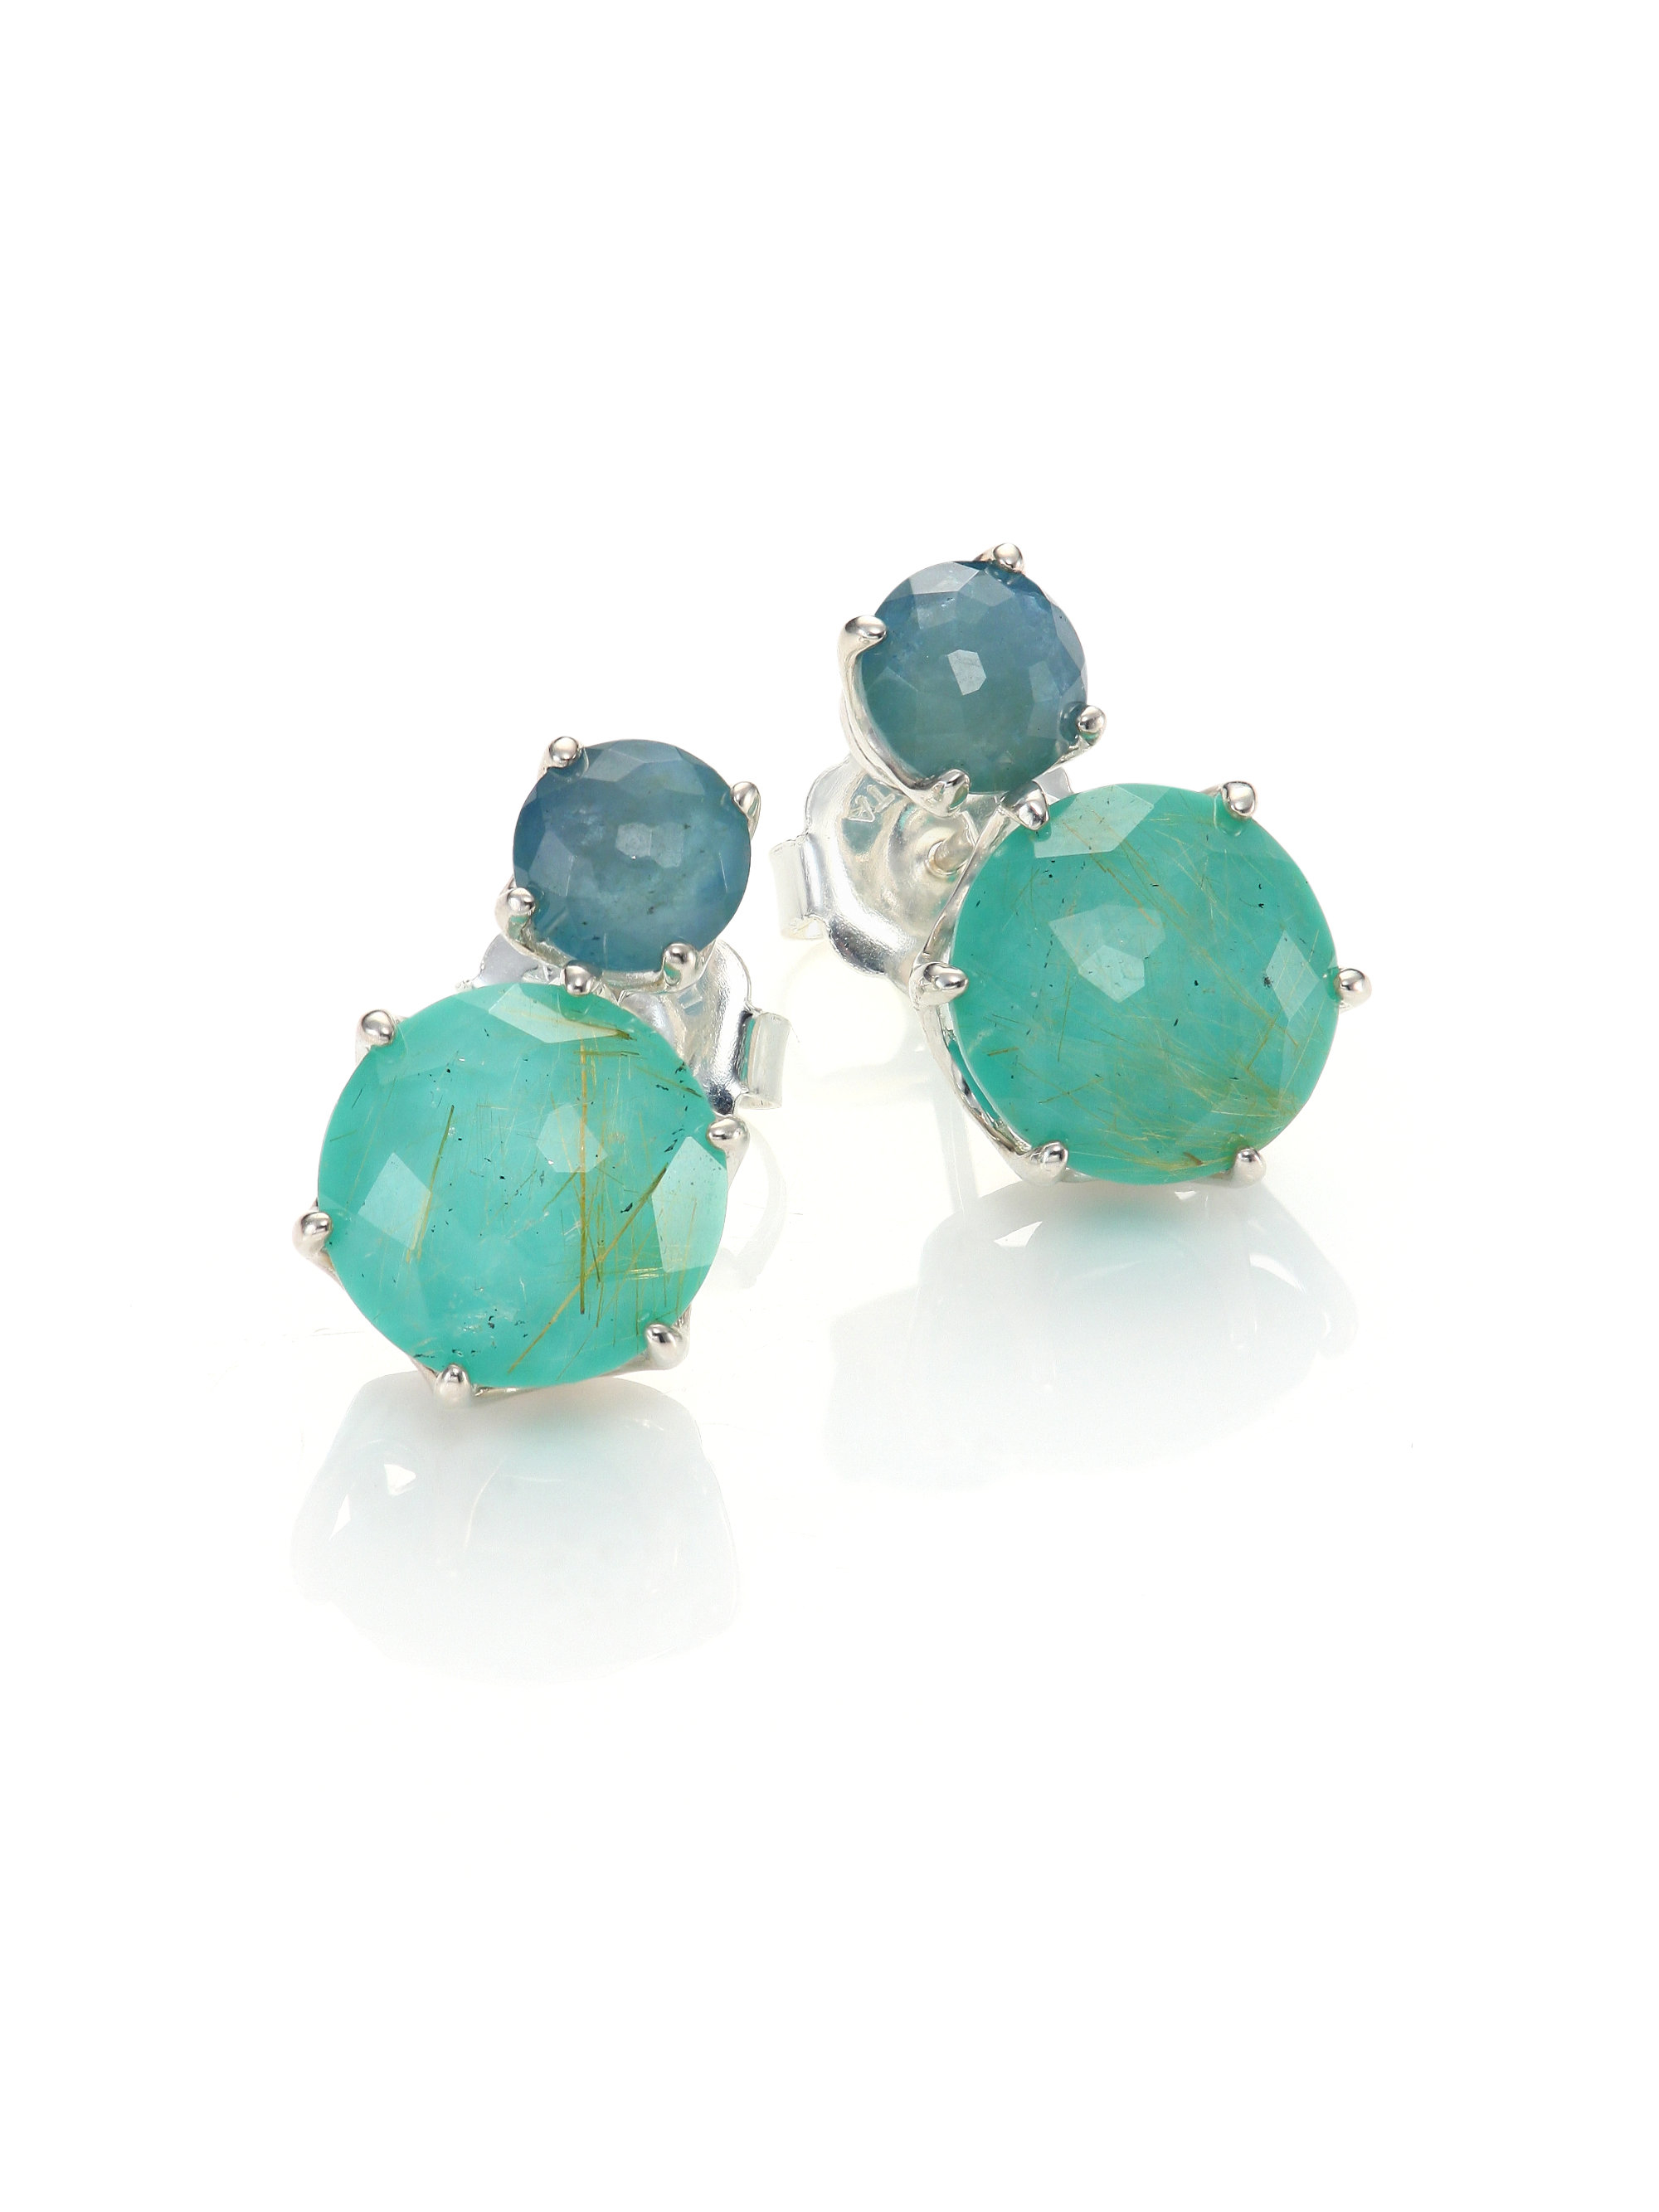 screw earring stud back aqua marine offer itm aquamarine special round ebay